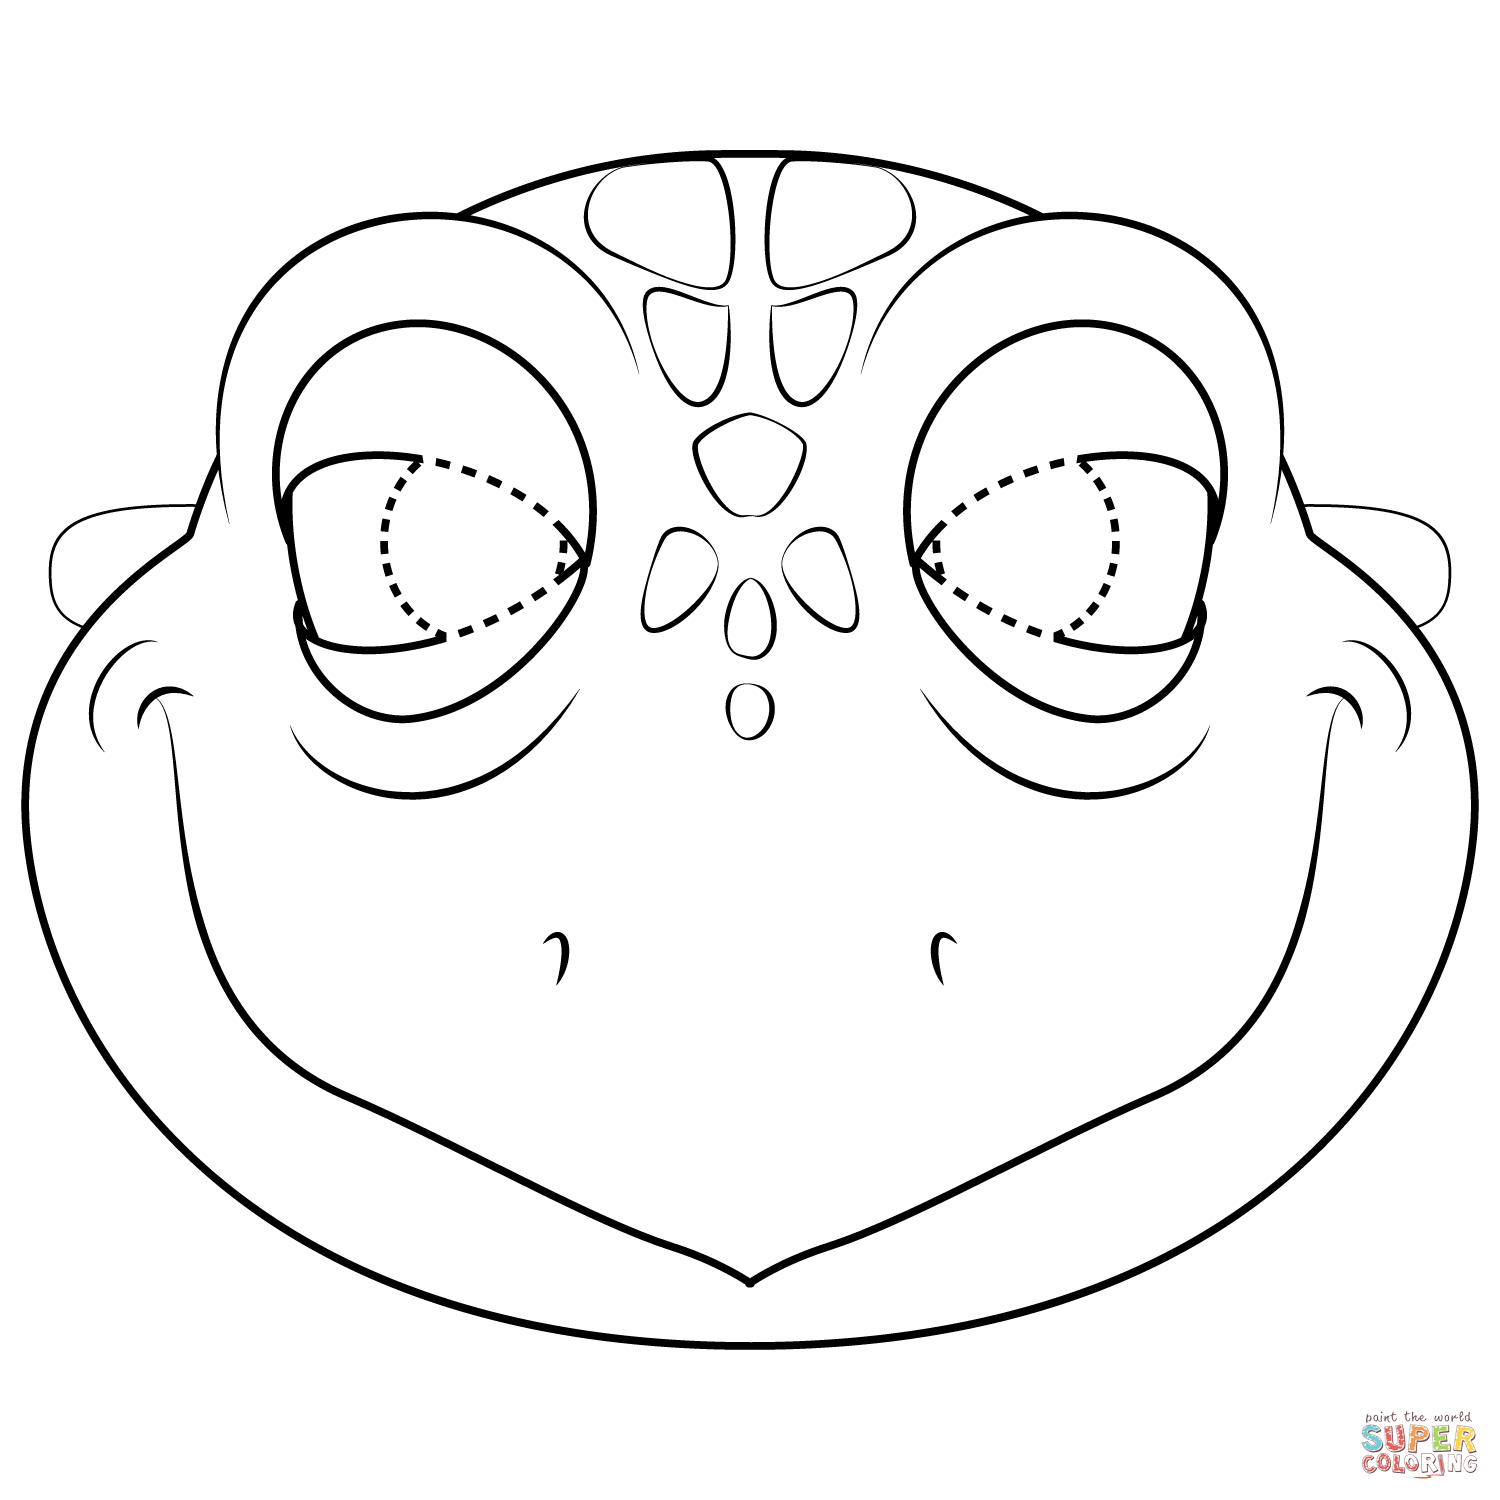 Turtle Mask Coloring Page   Free Printable Coloring Pages - Free Printable Lizard Mask